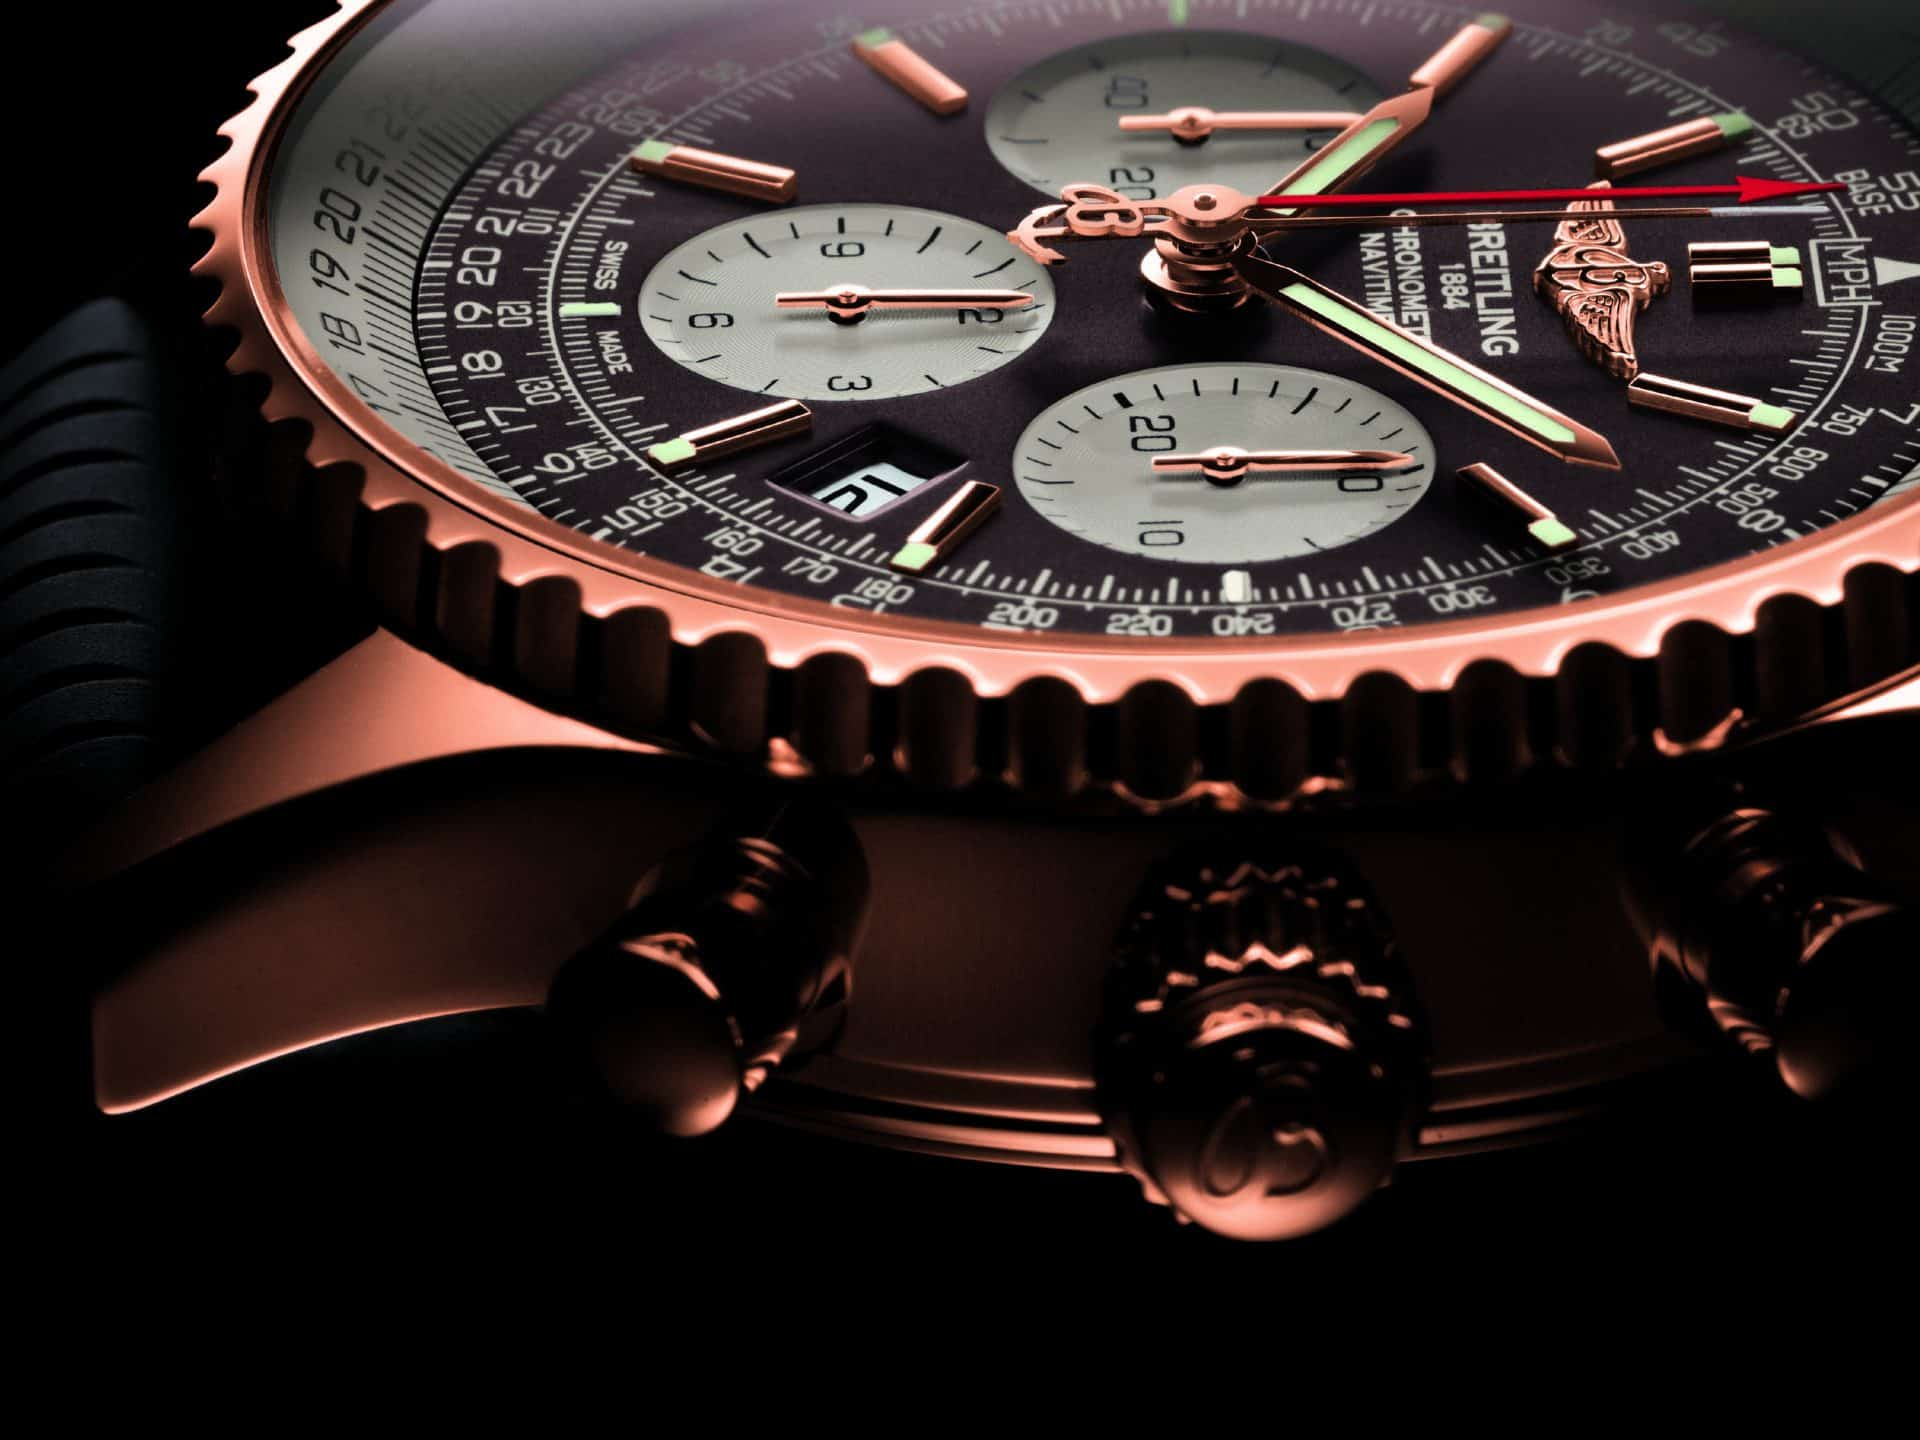 Breitling Navitimer Rattrapante limitiert in Rotgold